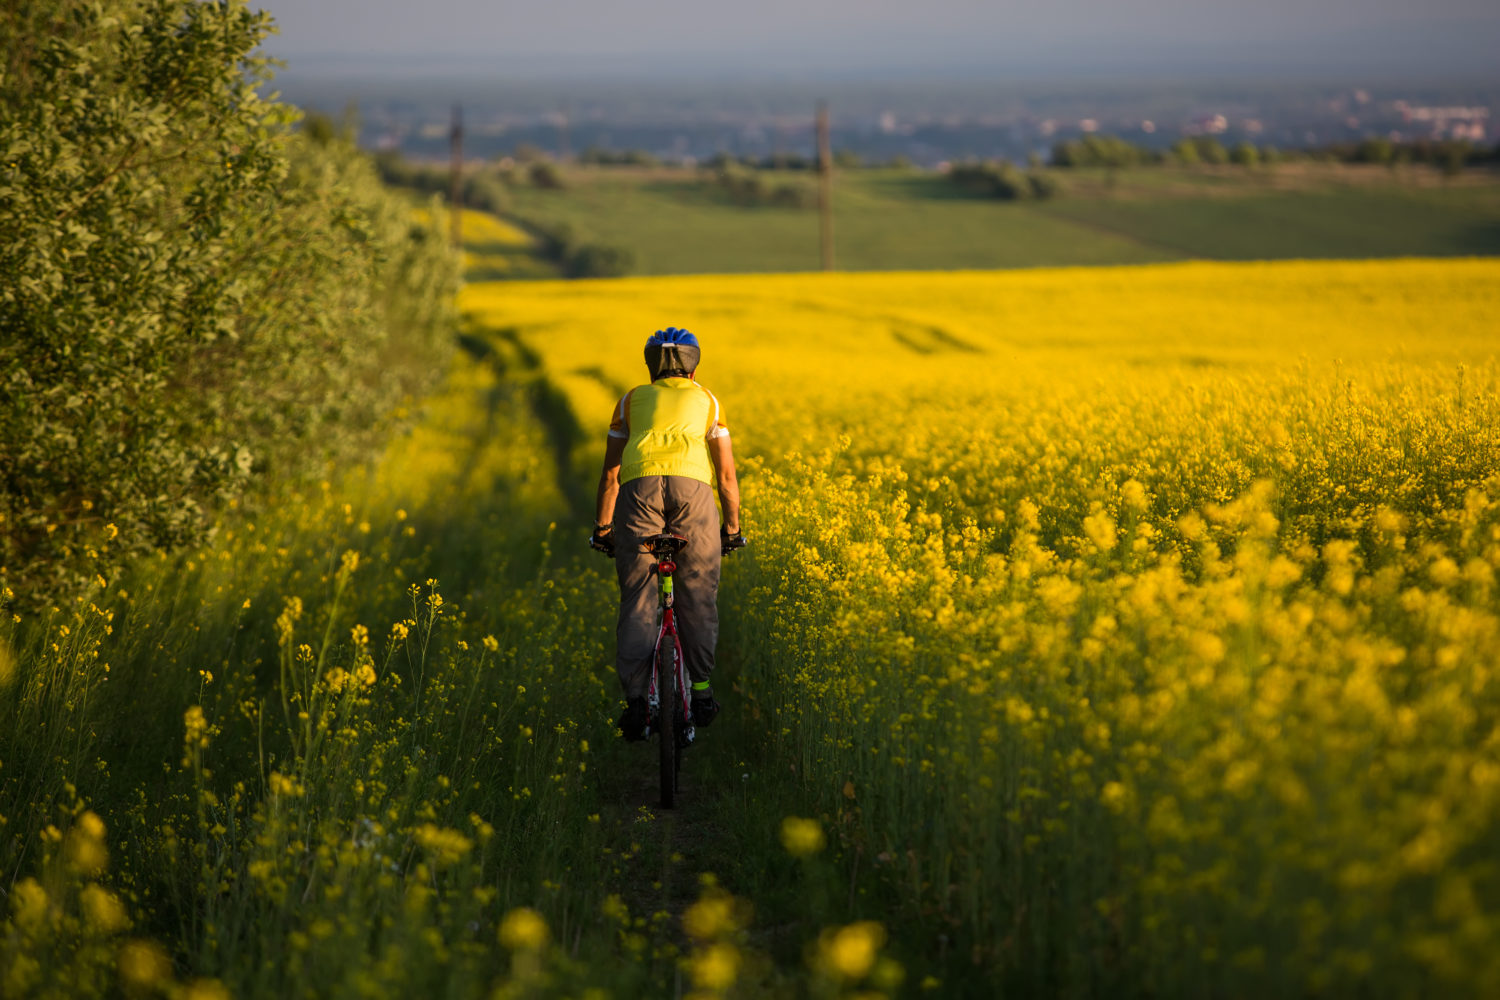 Cyclist on a country road next to a canola field going from Riga to Vilnius